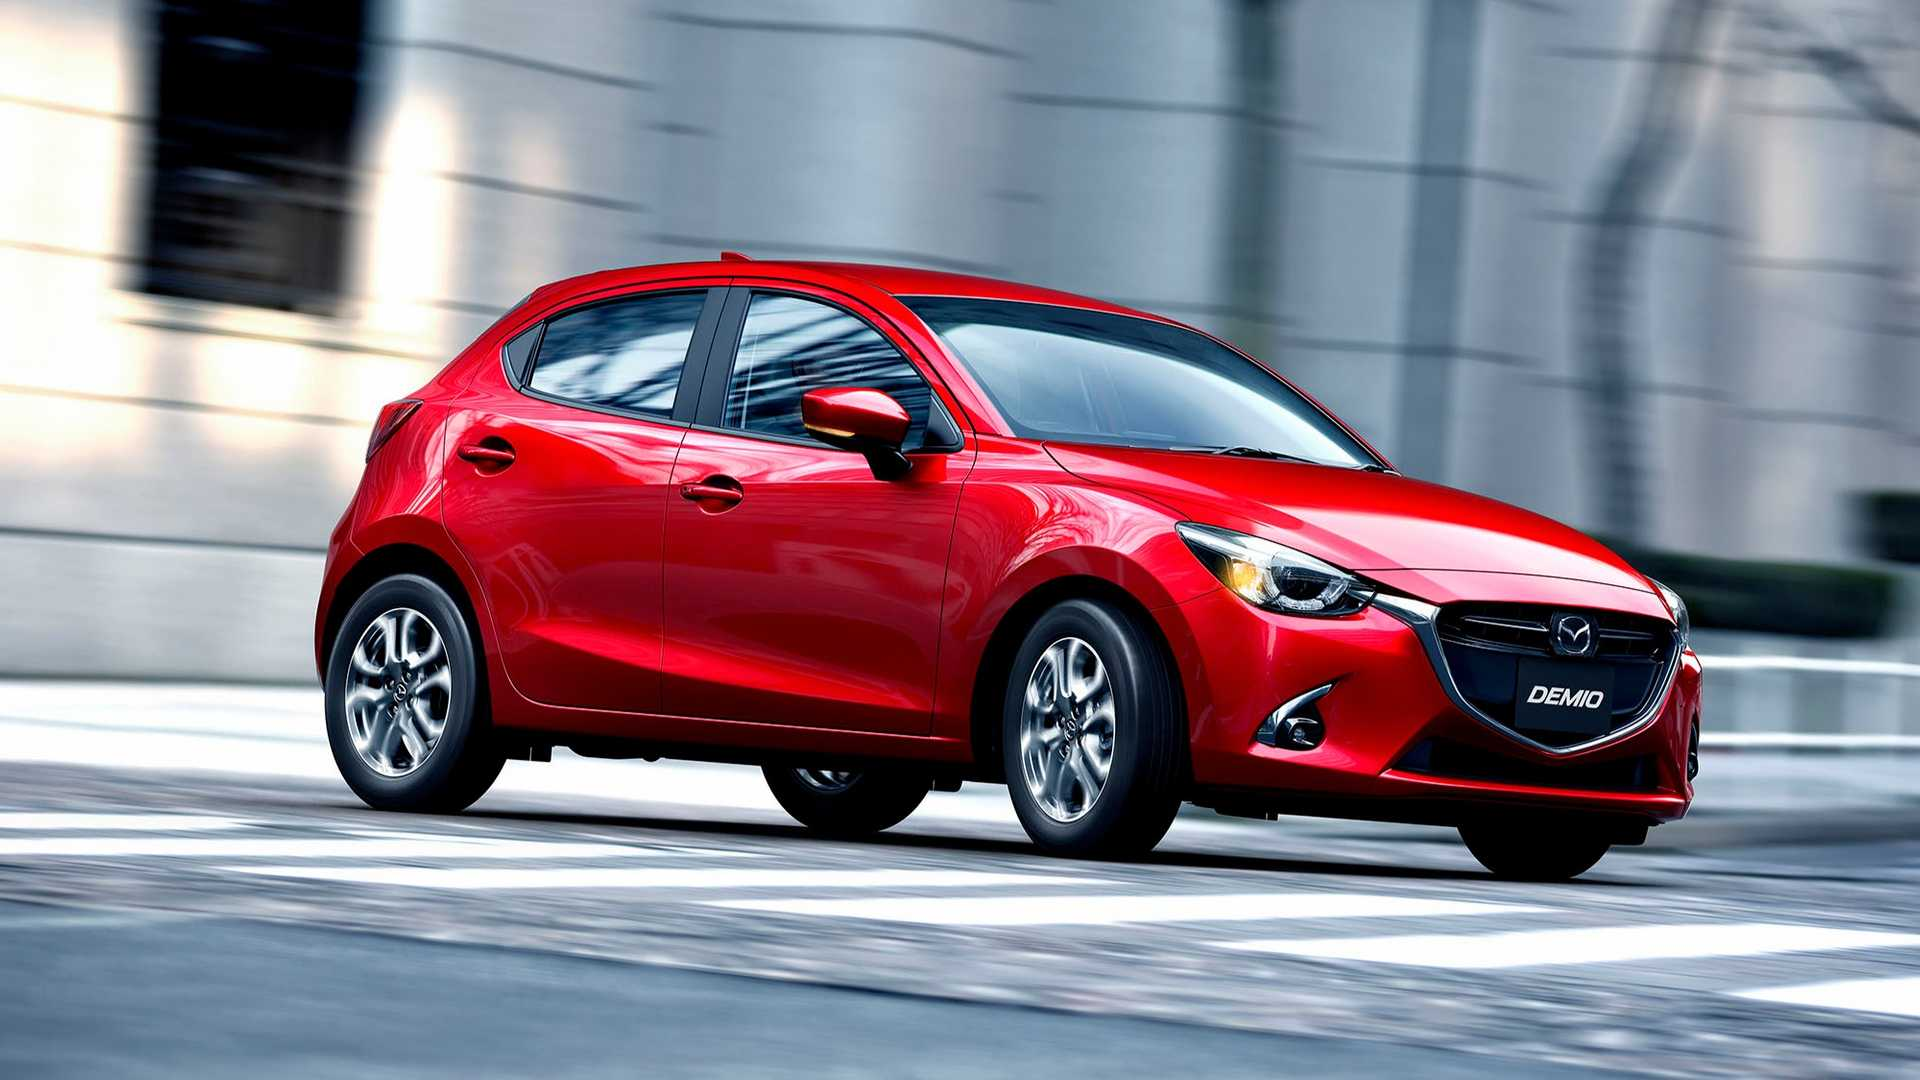 25 Great Mazda 2 Hatchback 2020 Exterior and Interior with Mazda 2 Hatchback 2020